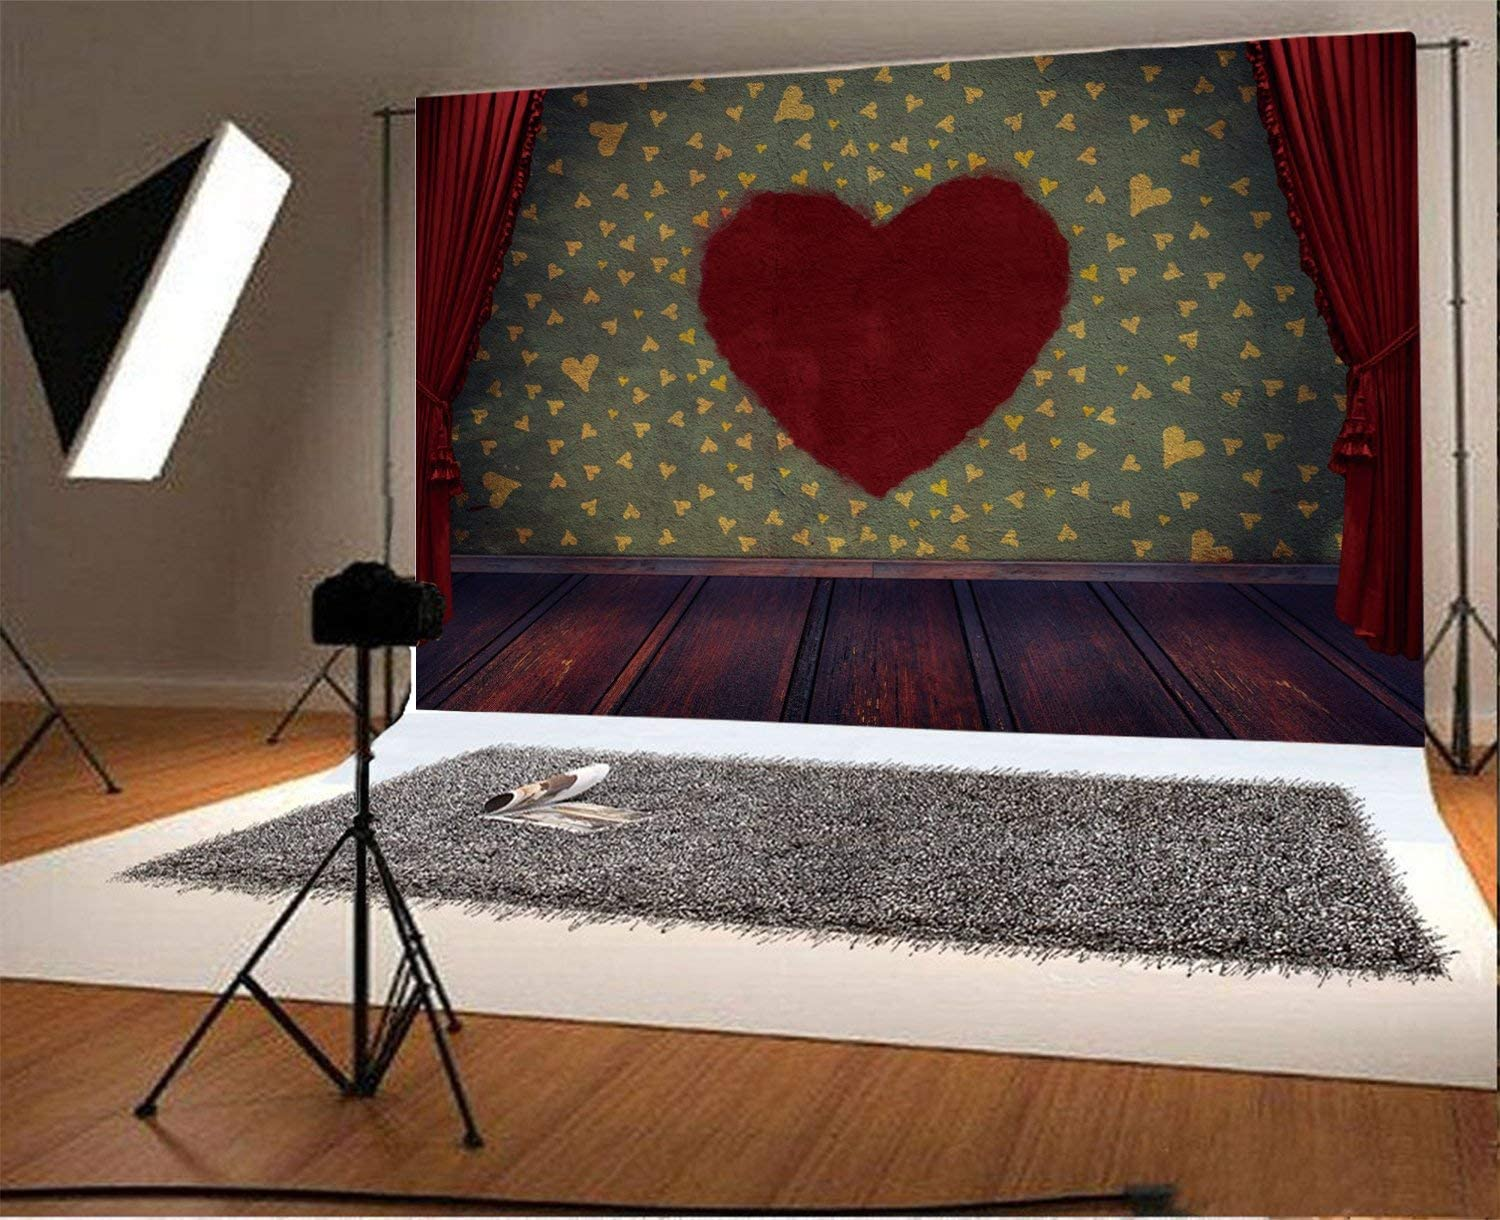 CdHBH 10x6.5ft Vinyl Photography Backdrop Shabby Chic Red Heart on Wall Brown Wood Floor Curtain Valentine Day Photo Background Children Baby Adults Portraits Backdrop